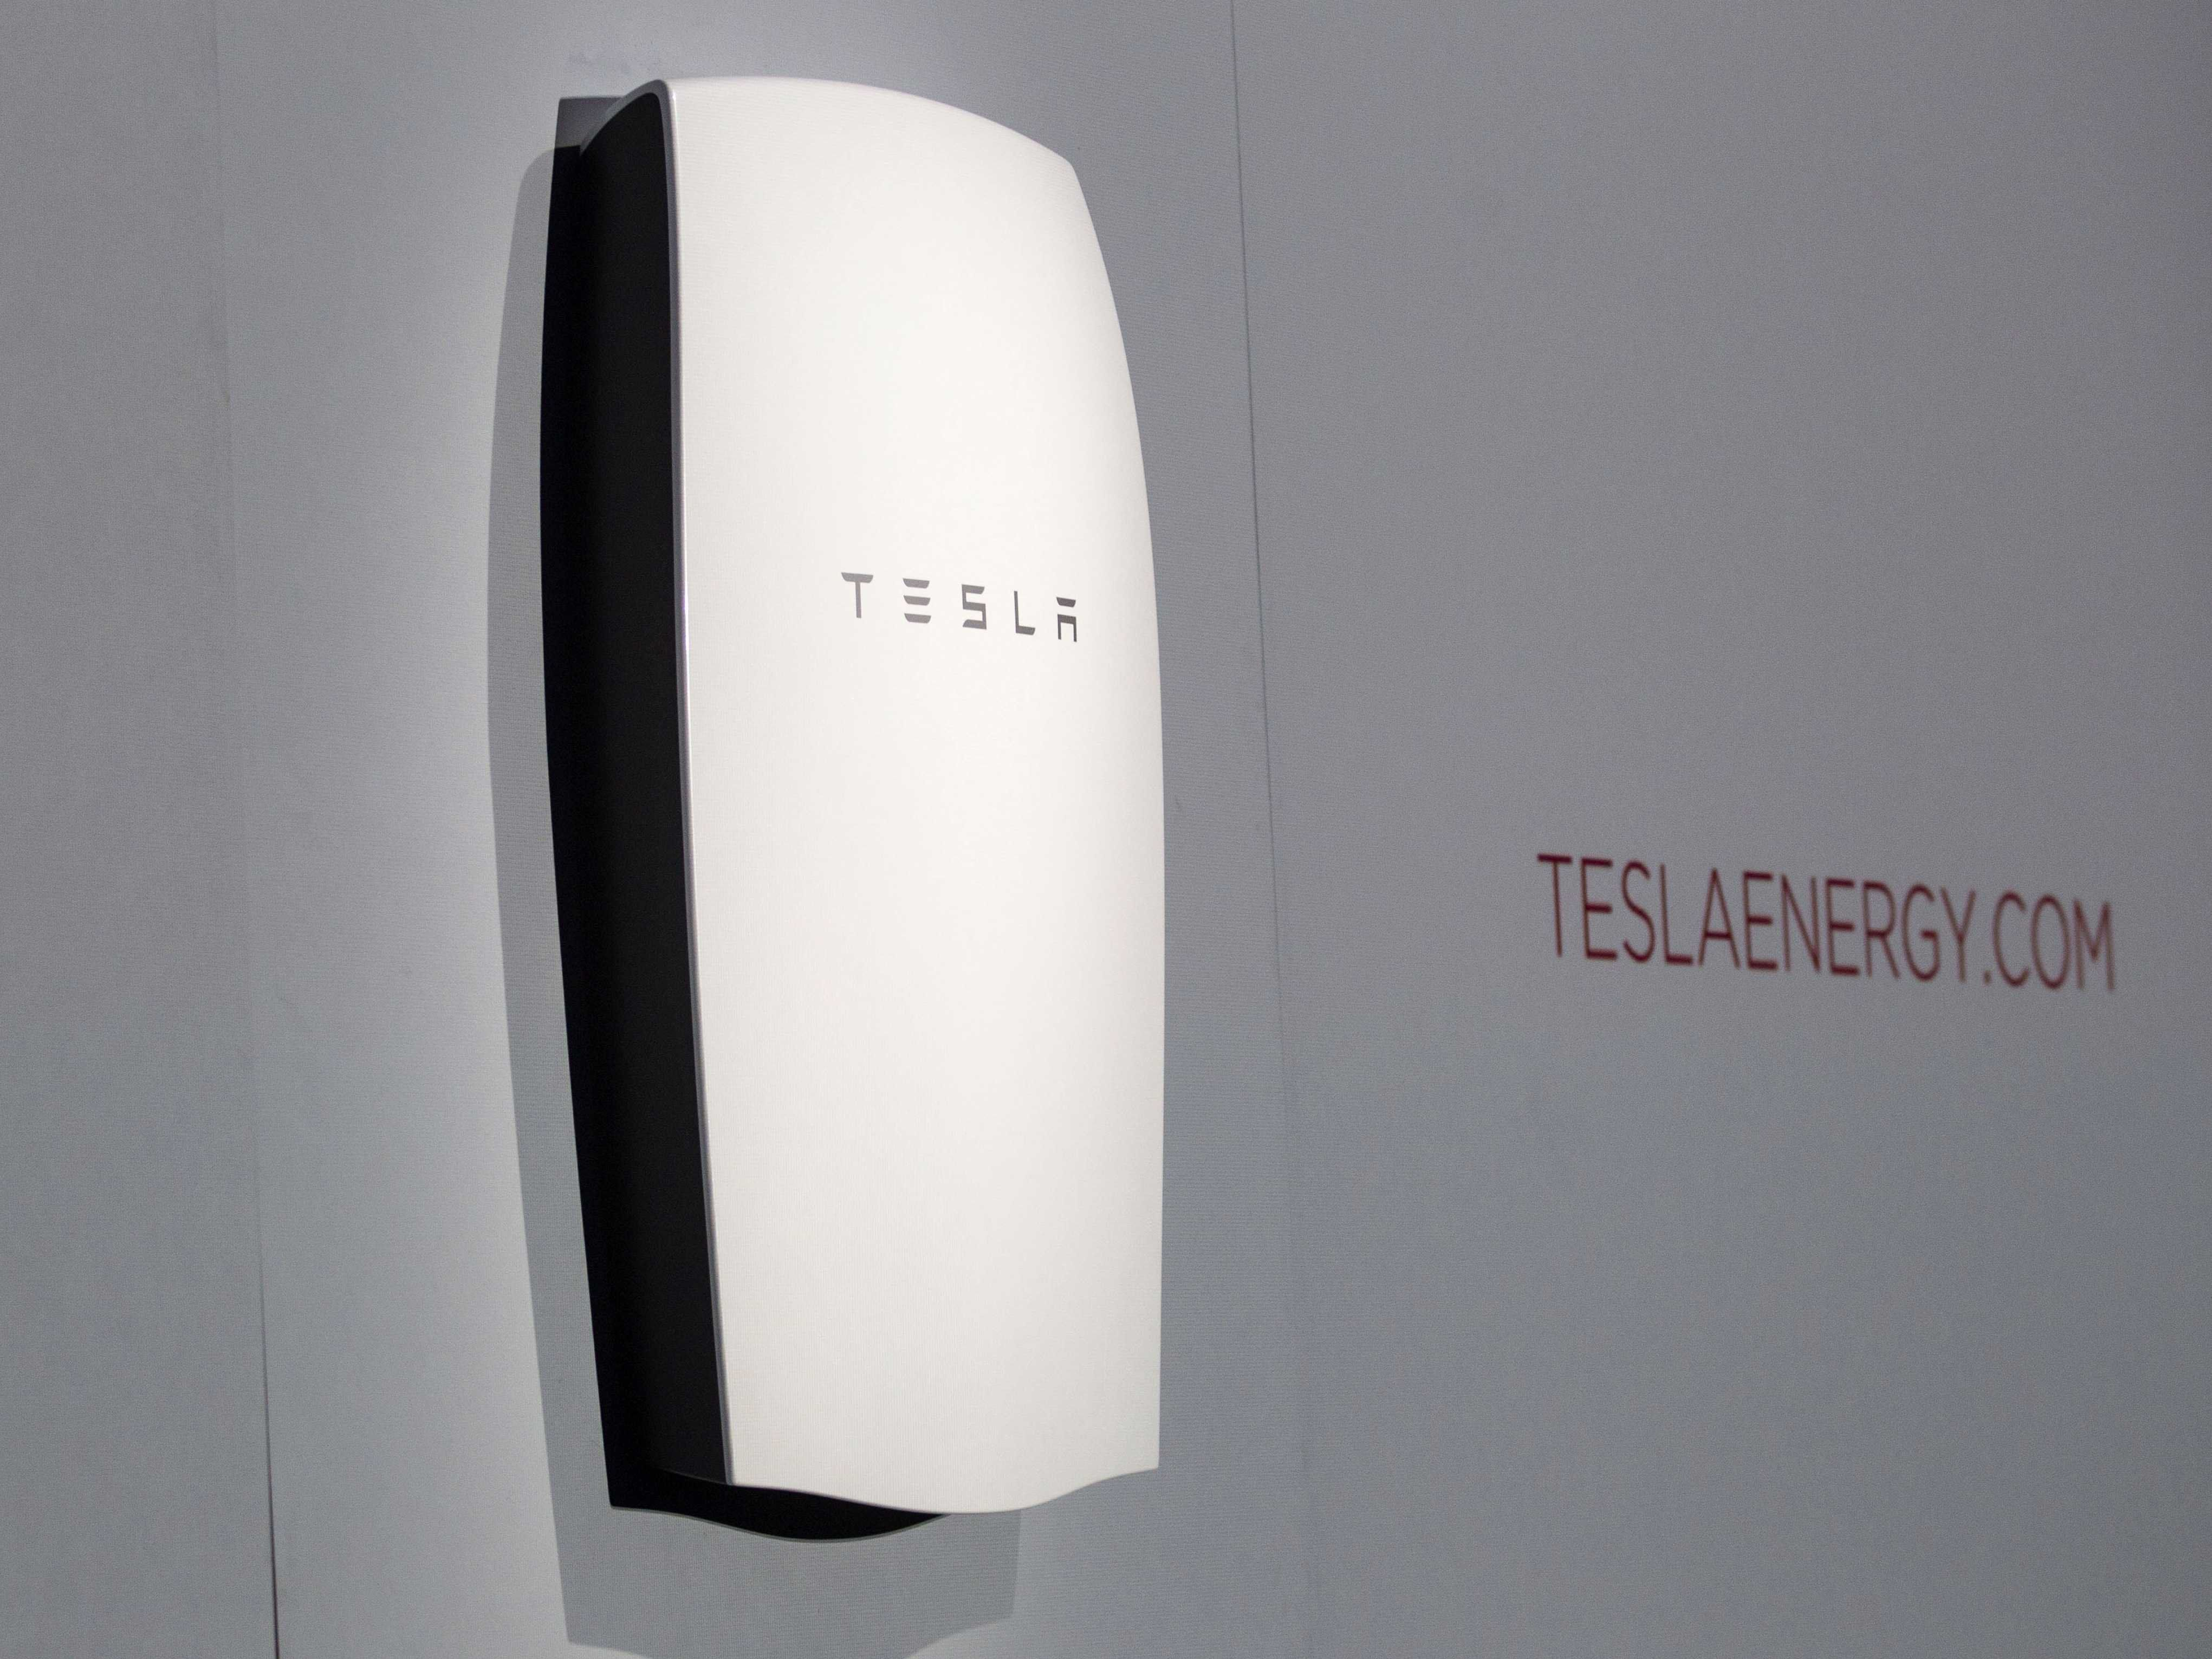 Tesla S New Rechargeable Battery That Can Power Your Home Is Coming This Summer Tesla Powerwall Powerwall Tesla